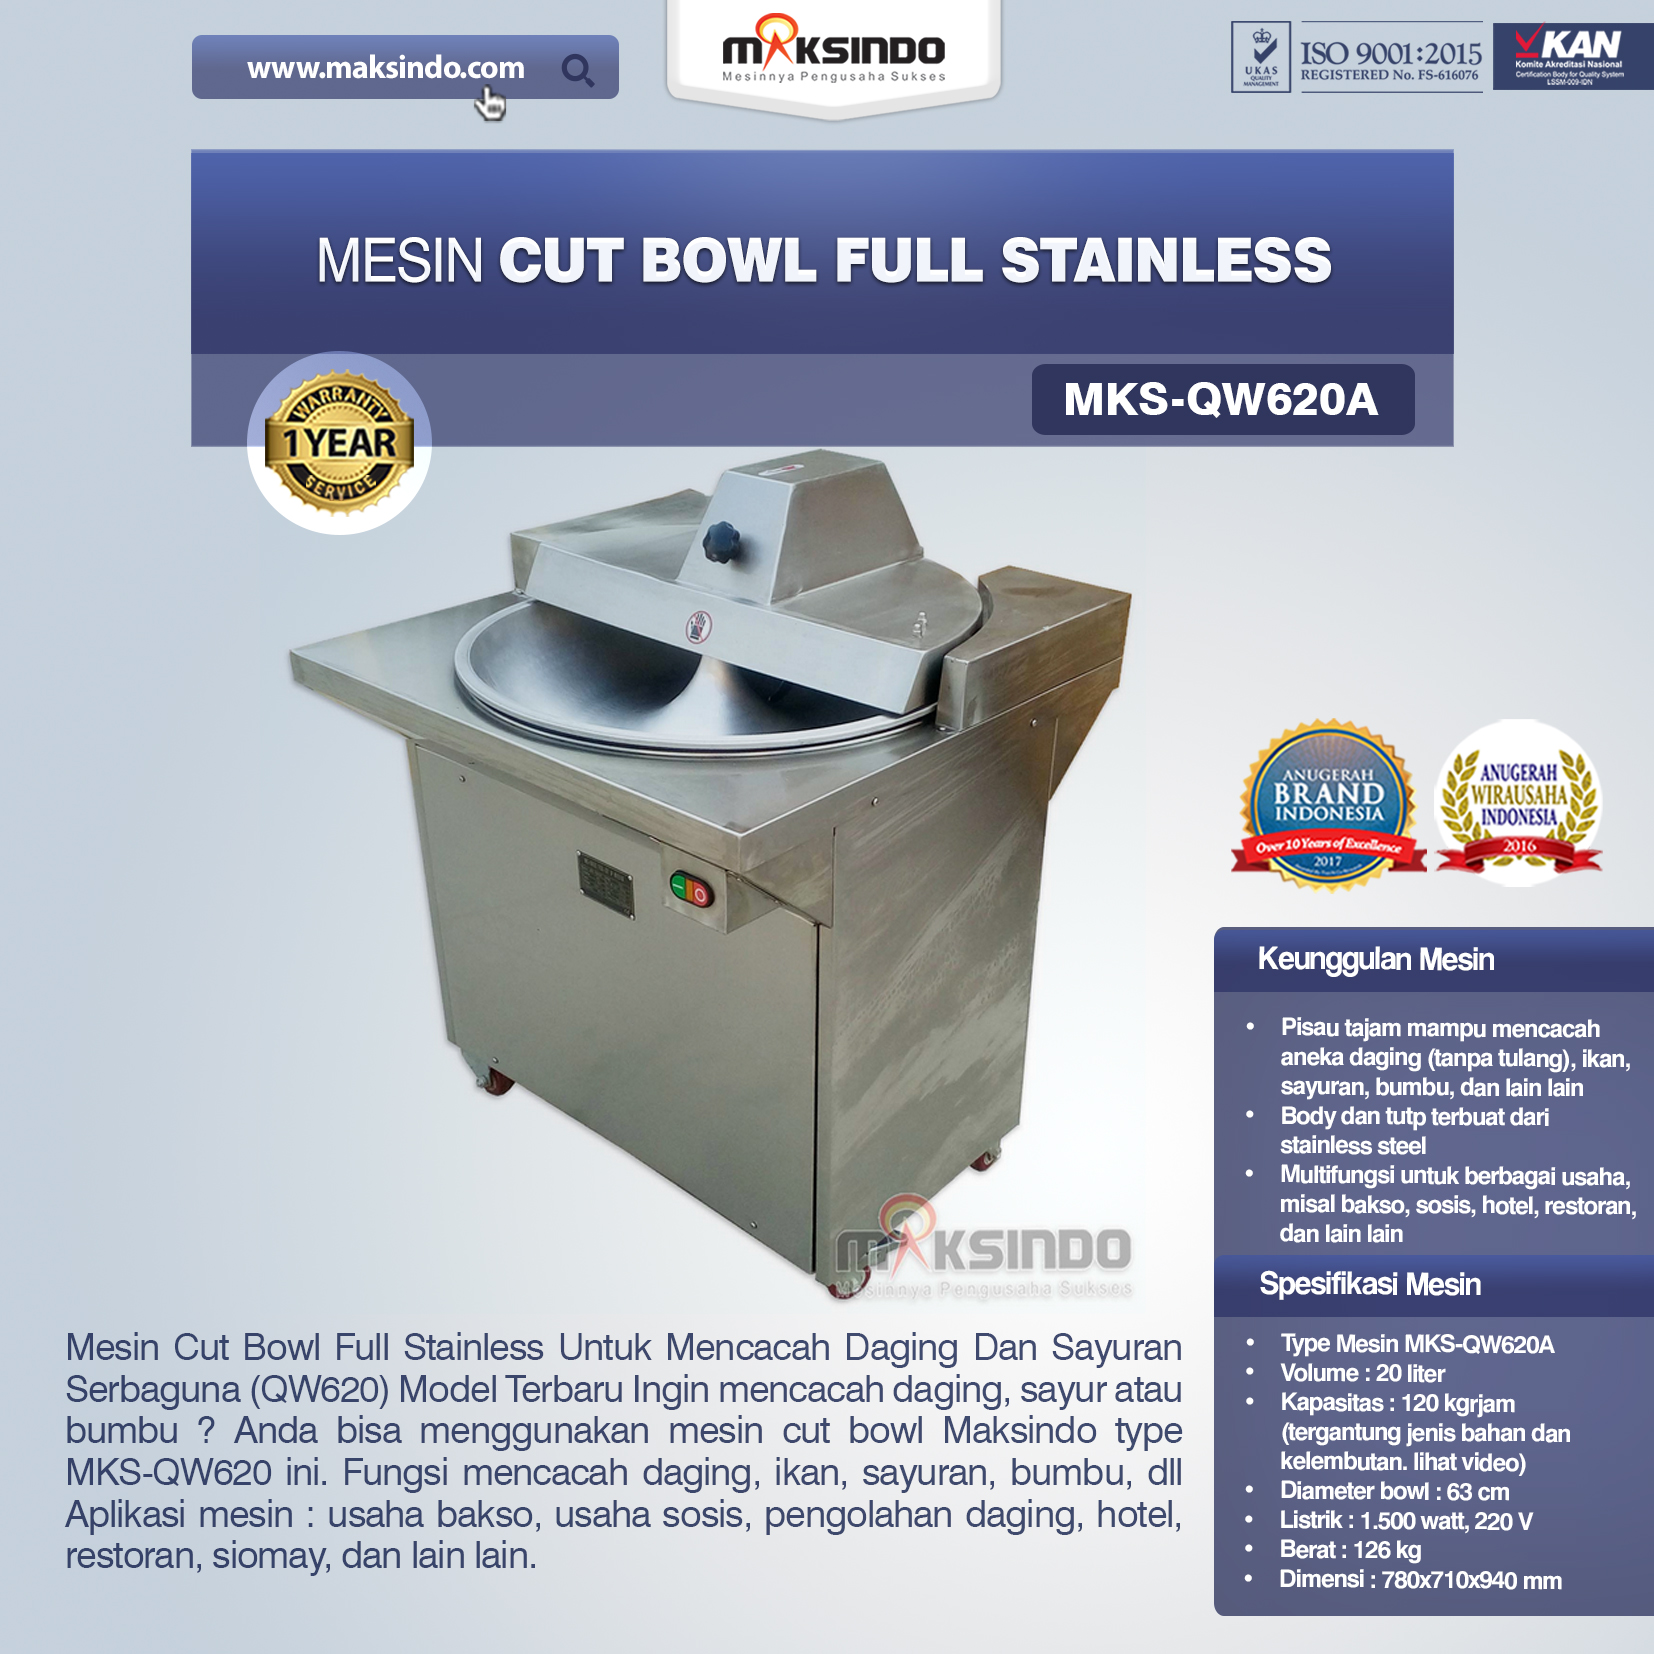 Mesin Cut Bowl Full Stainless MKS-QW620A